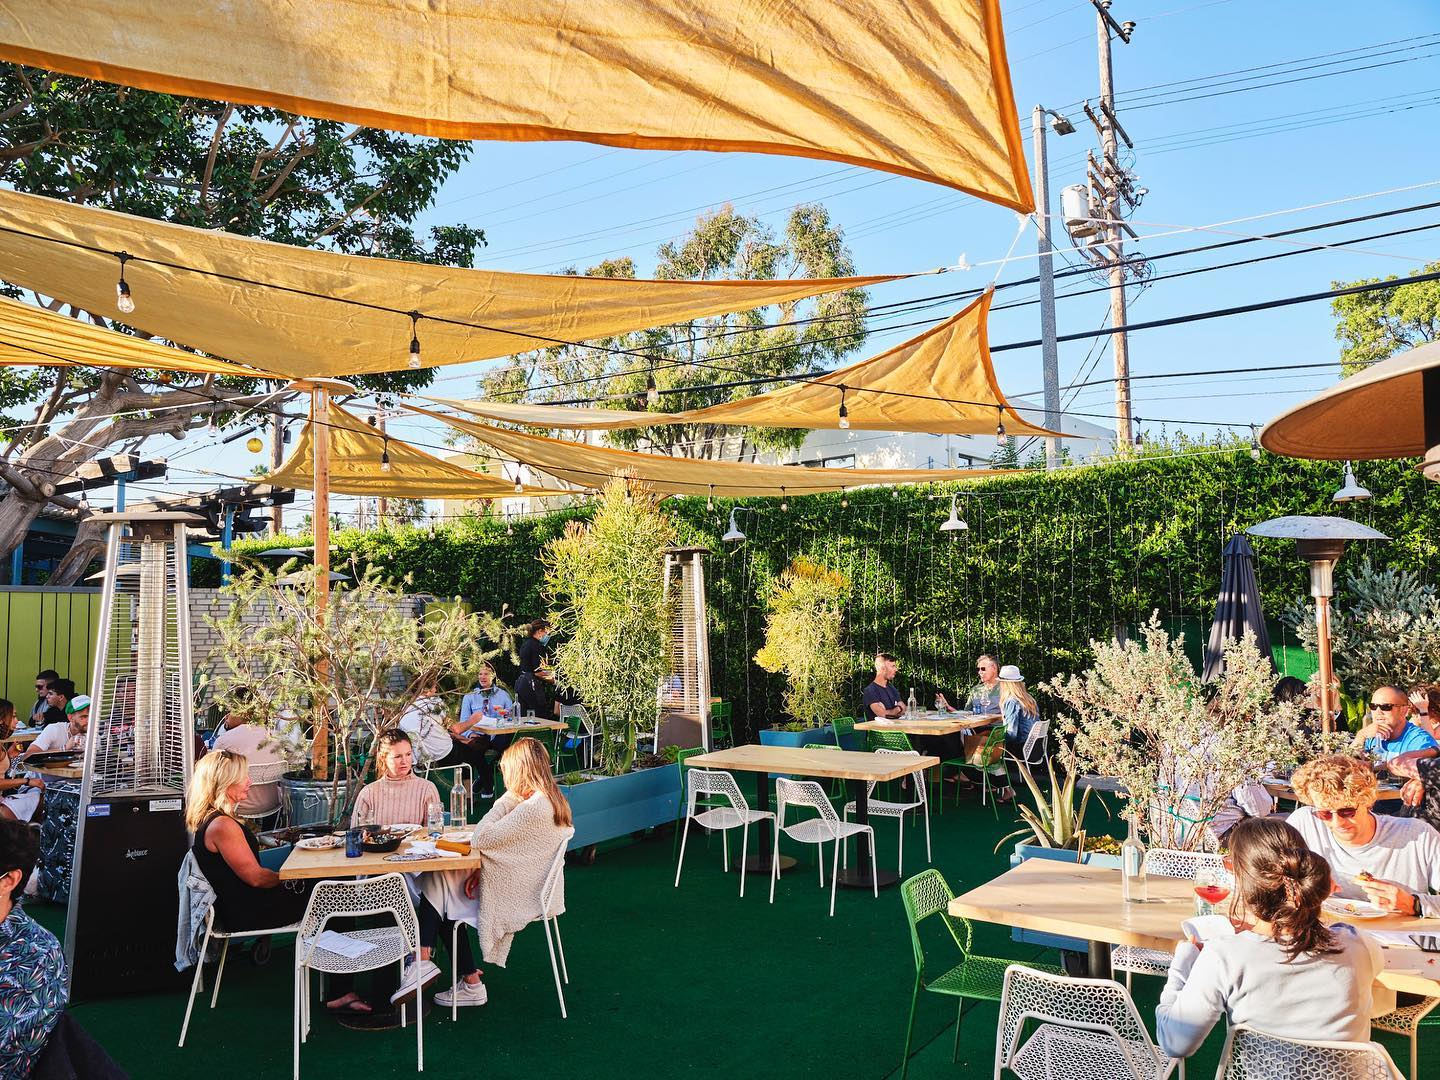 The Iconic Eatery In Southern California, The Rose Venice, Has The Most Delightful Outdoor Hideaway